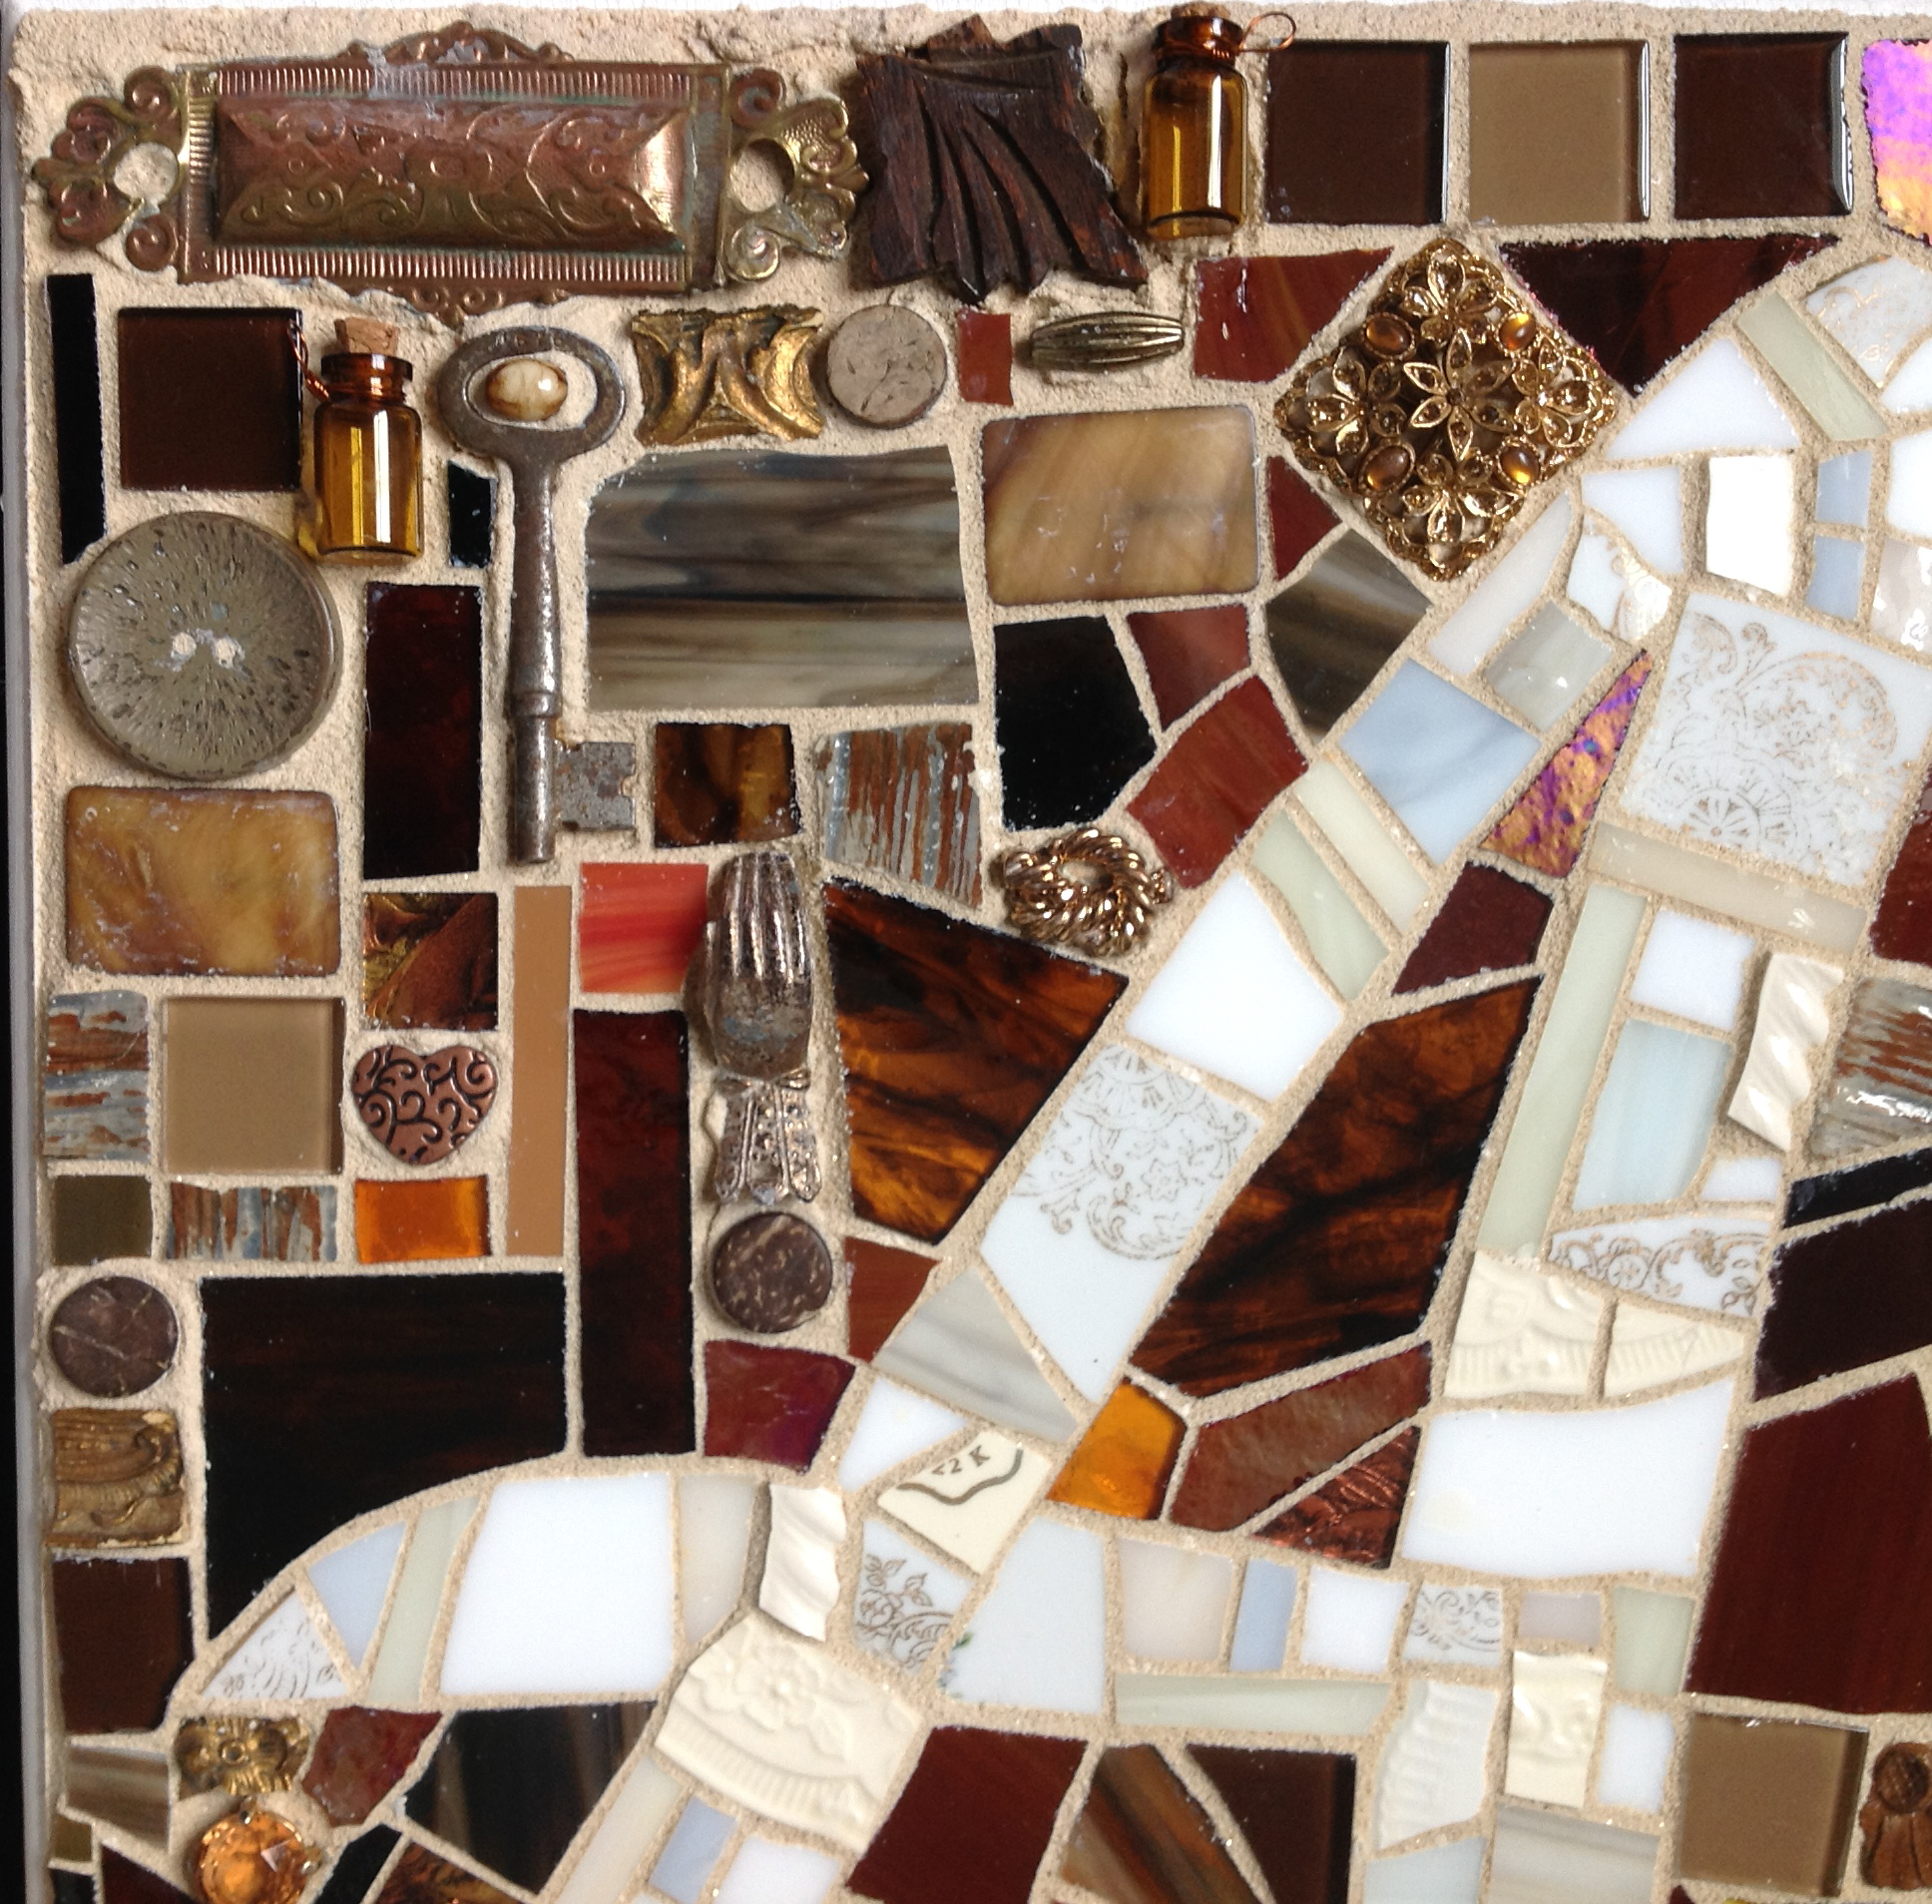 A mosaic close up